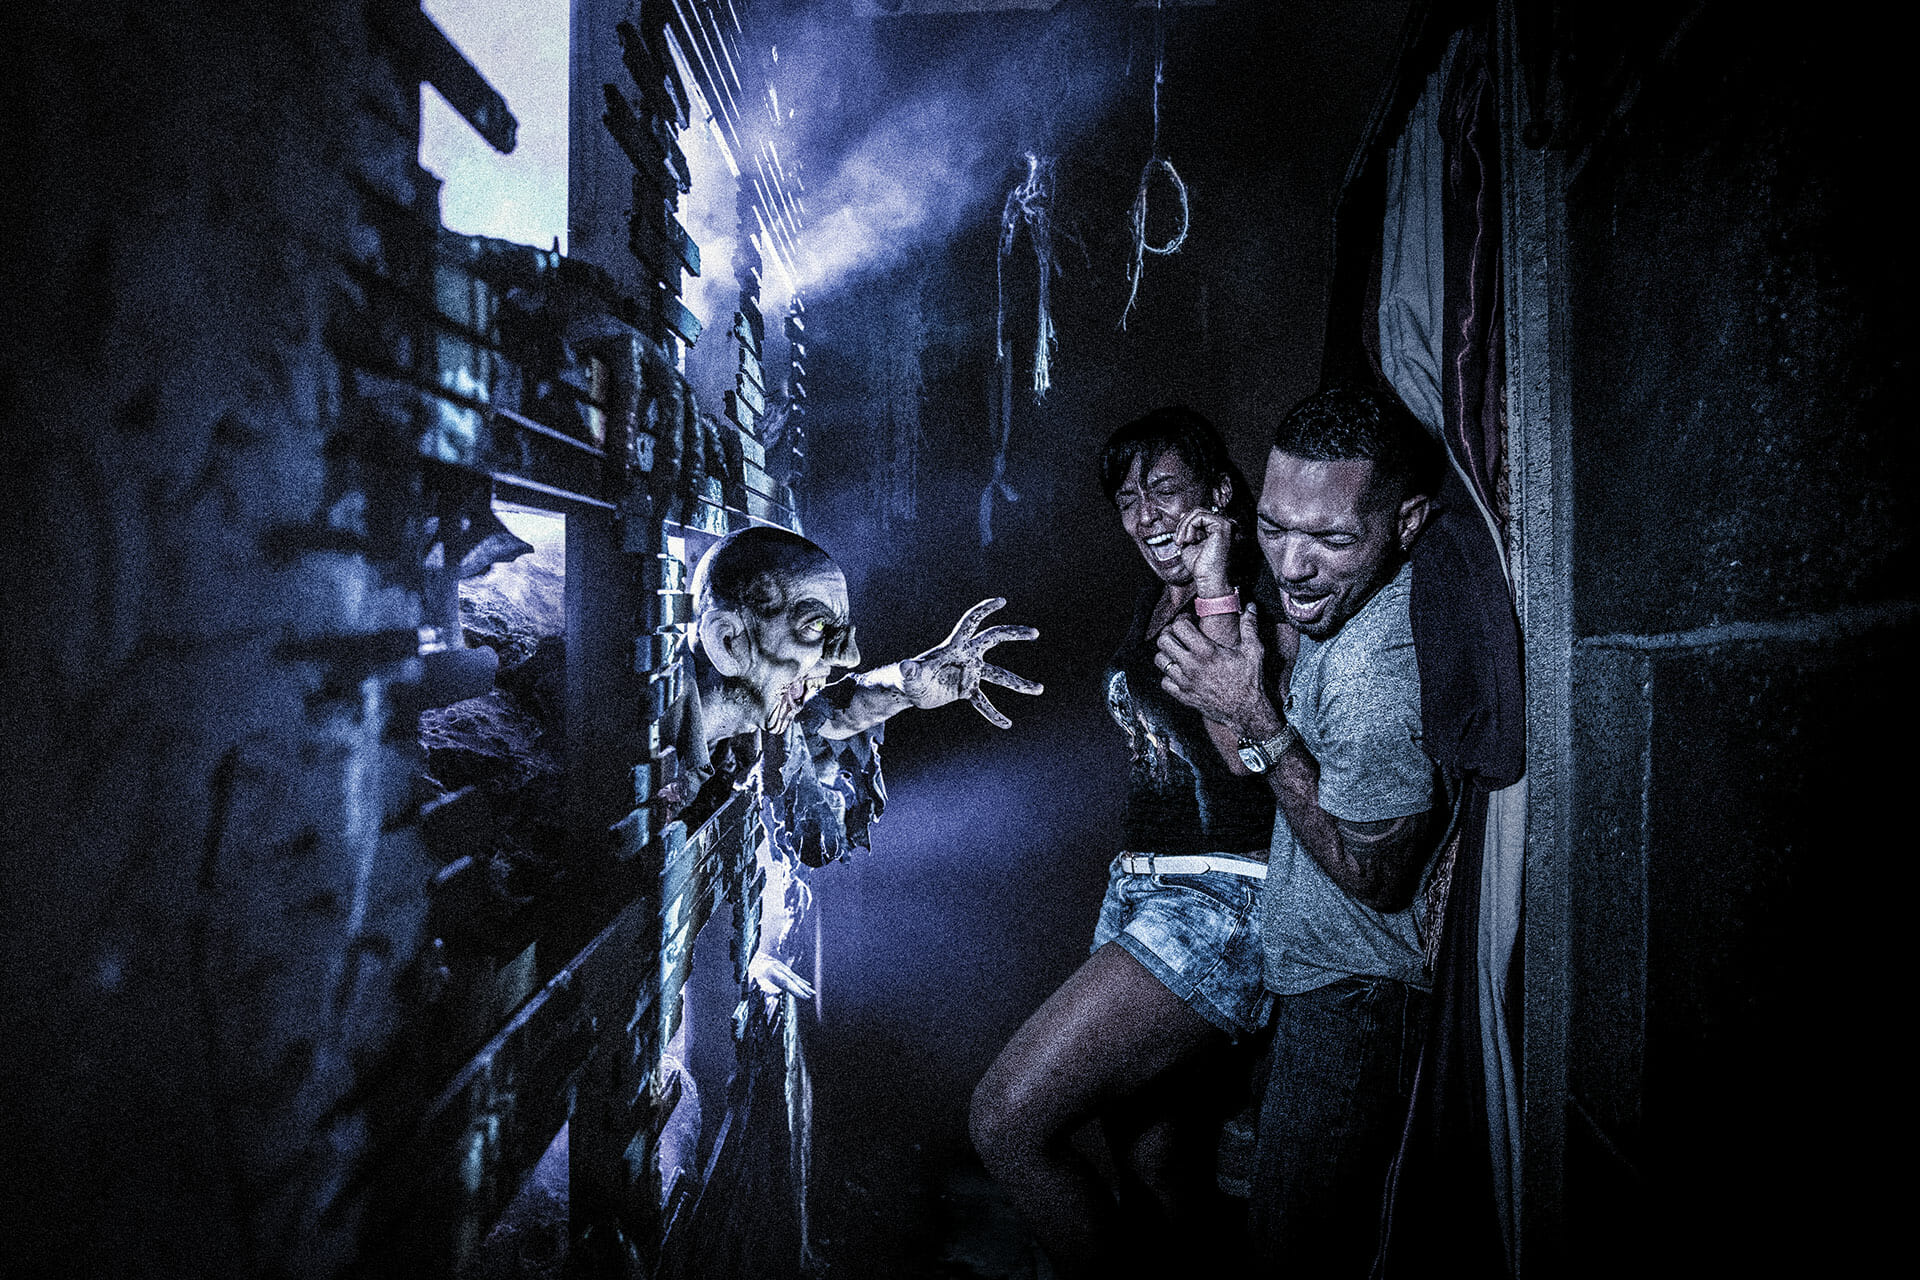 Guests Can Get 2 for 1 to Universal Orlando's Halloween Horror Nights